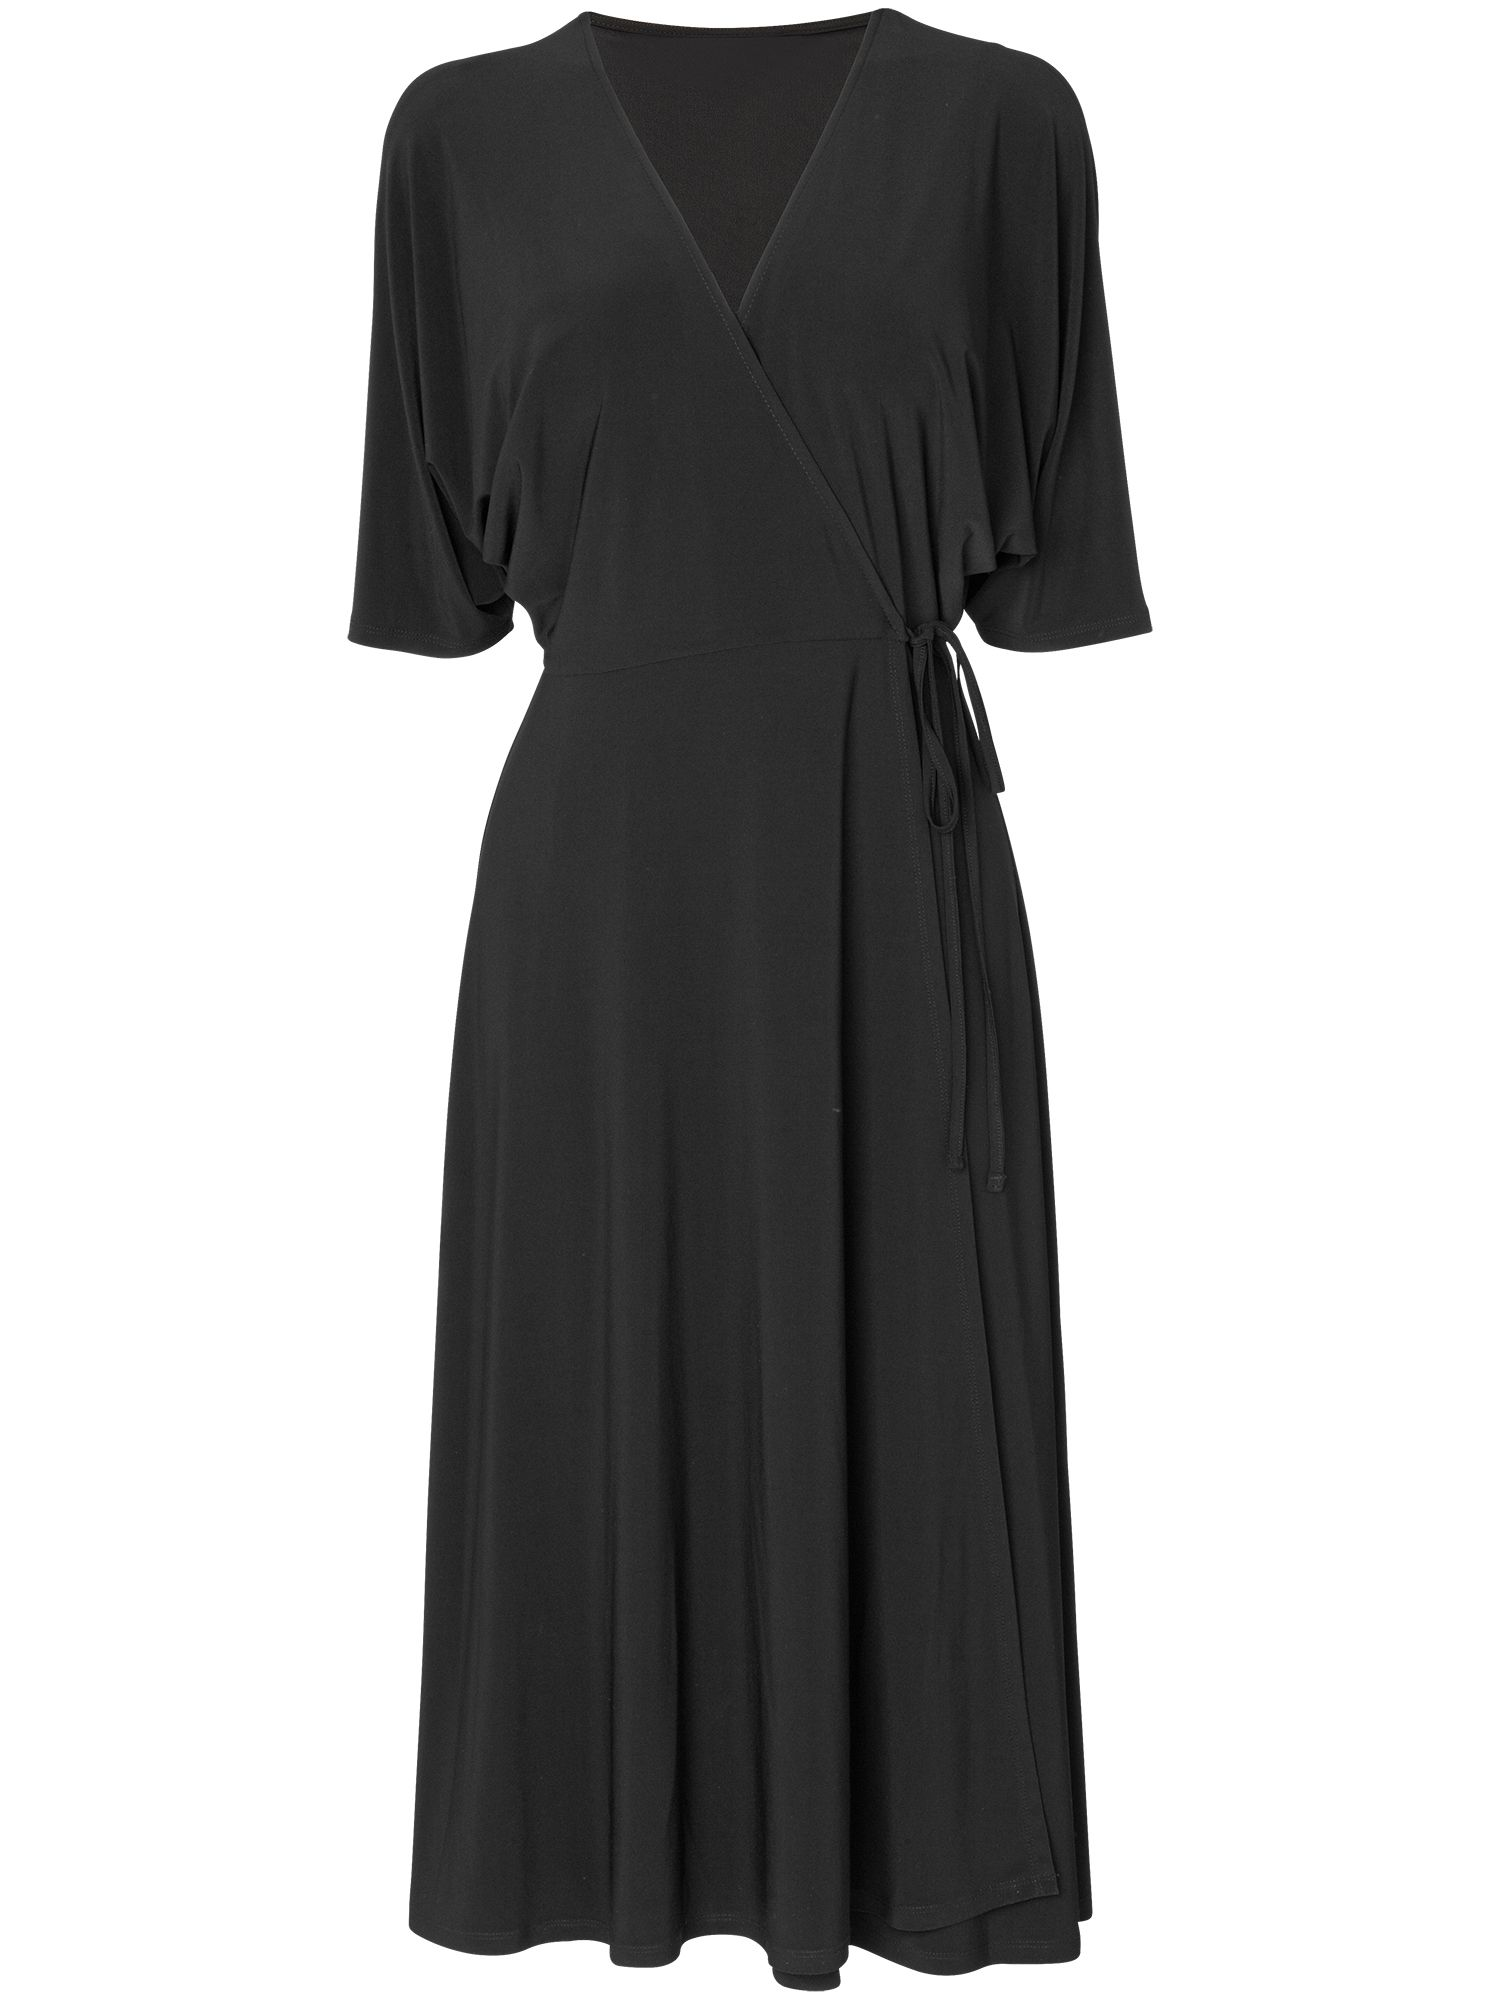 Sandra wrap dress